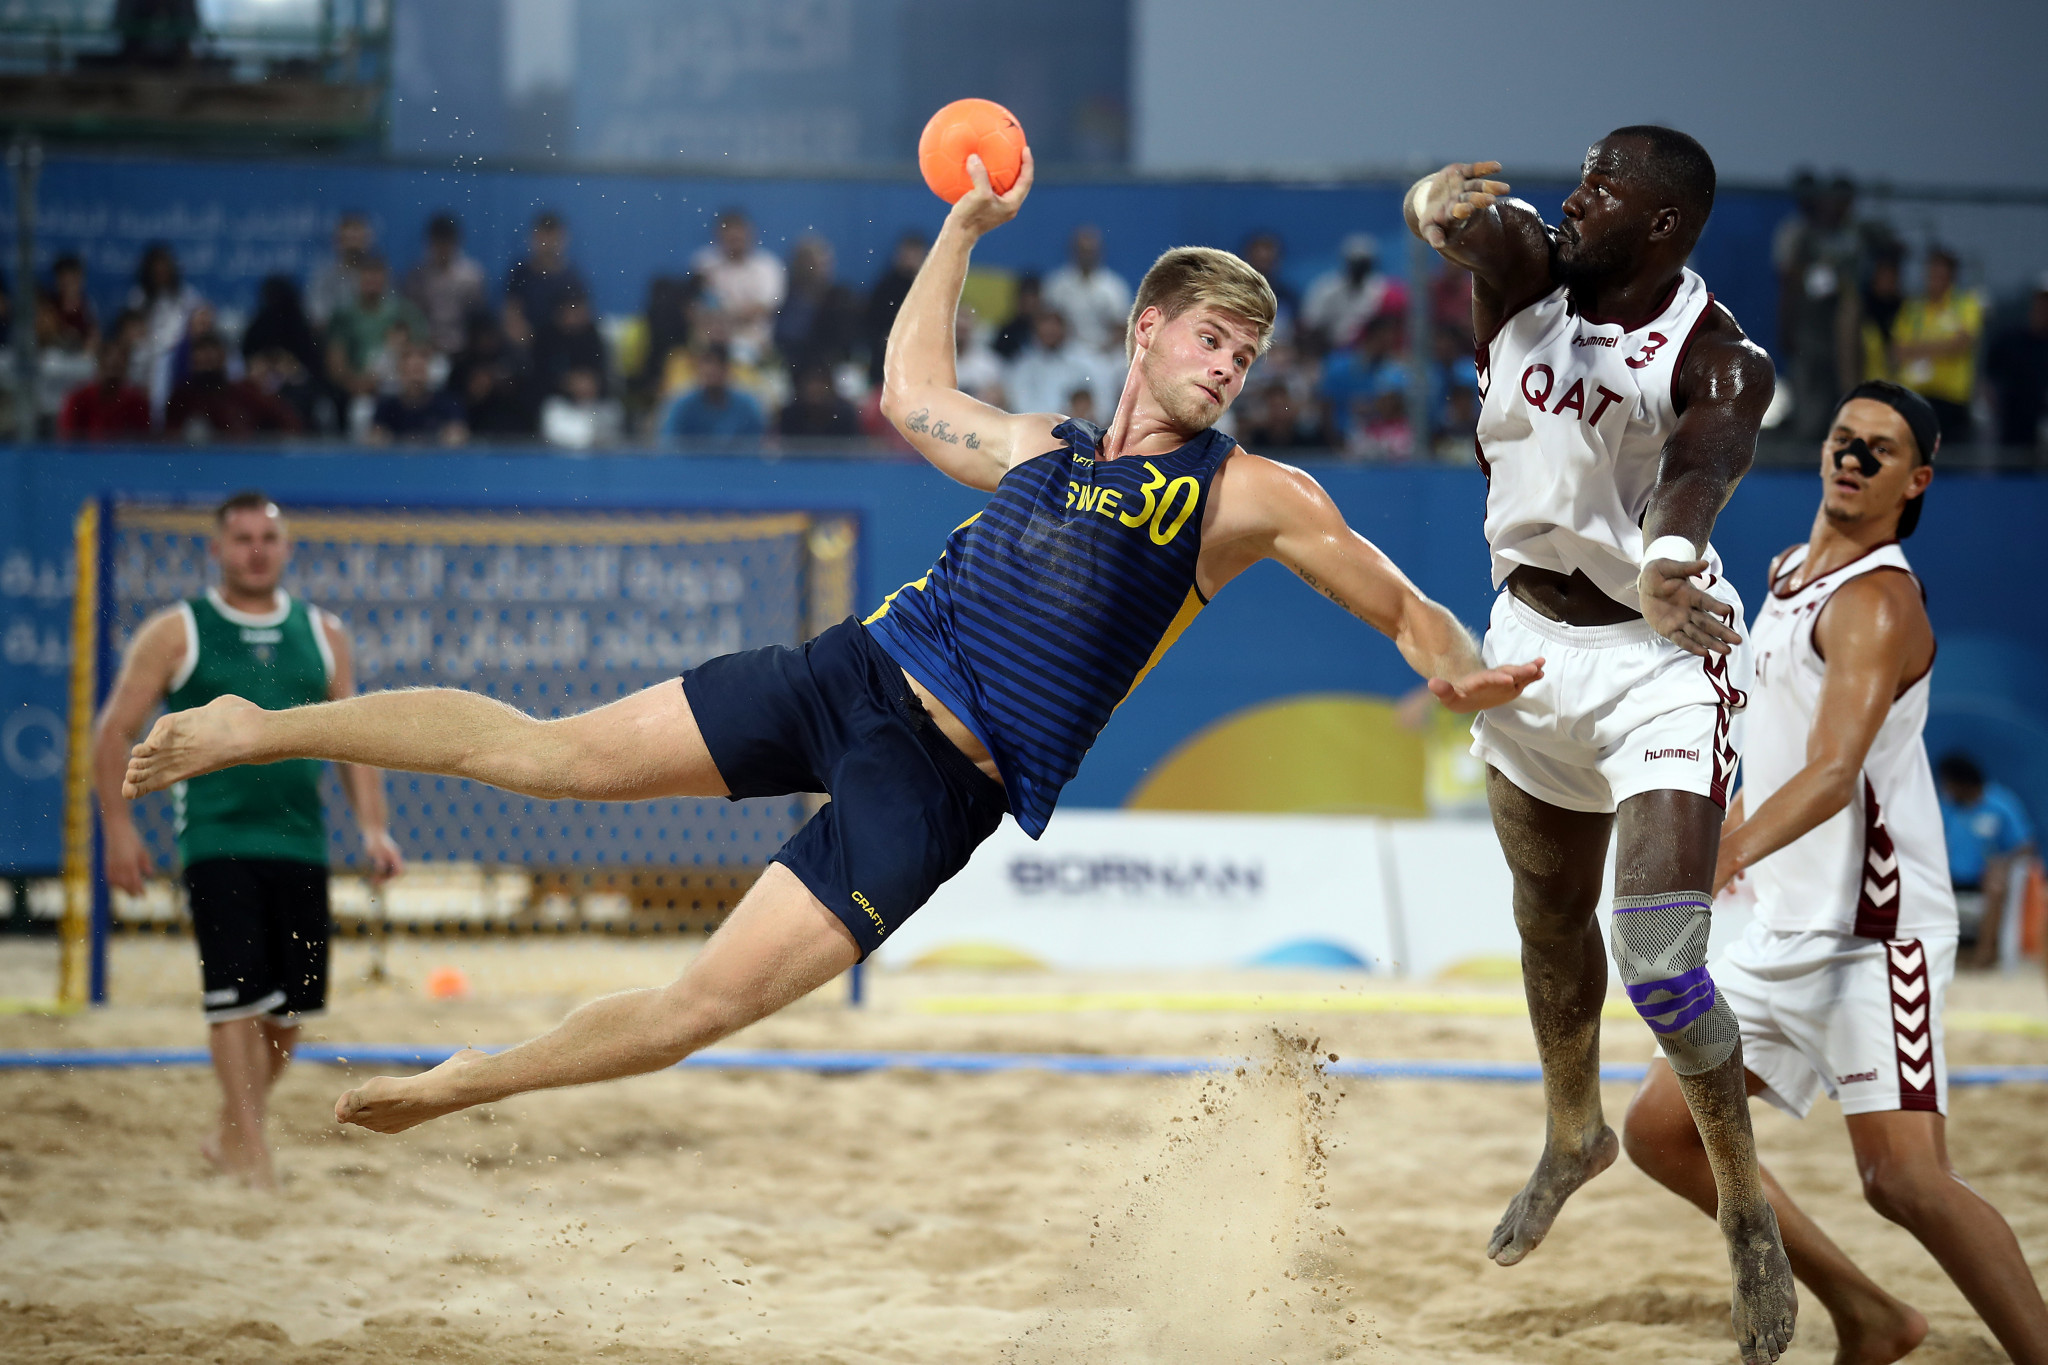 Karate and beach handball latest sports confirmed on 2023 European Games programme